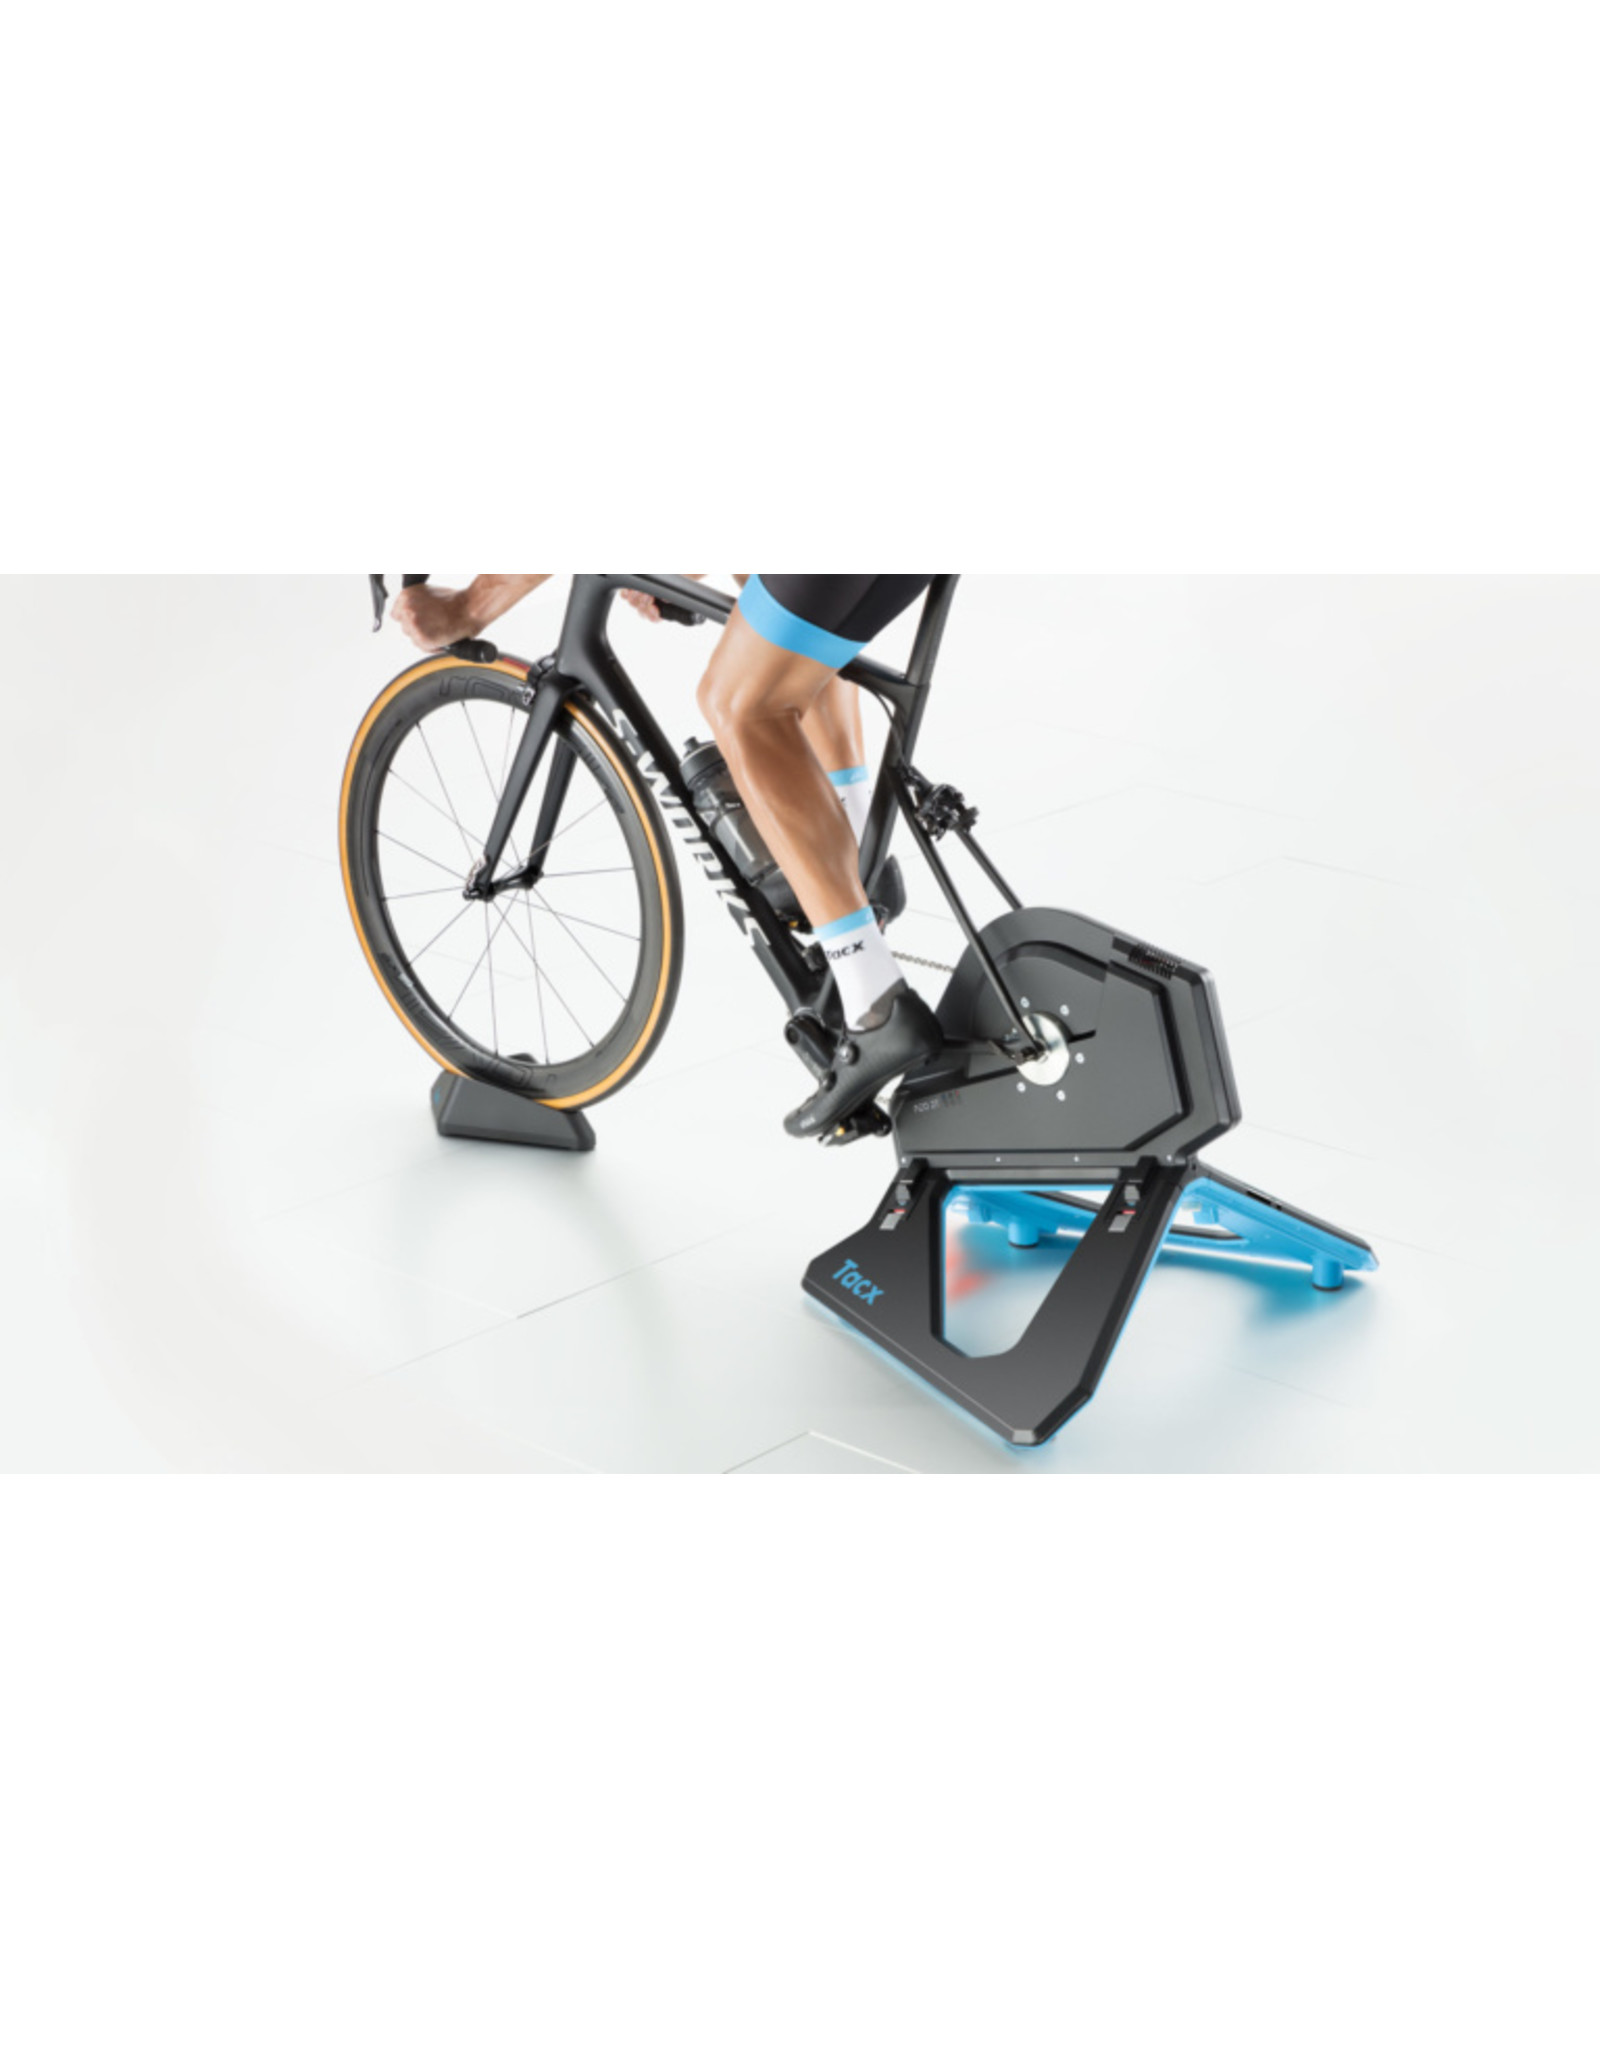 Tacx Tacx NEO 2T Smart Trainer Magnetic